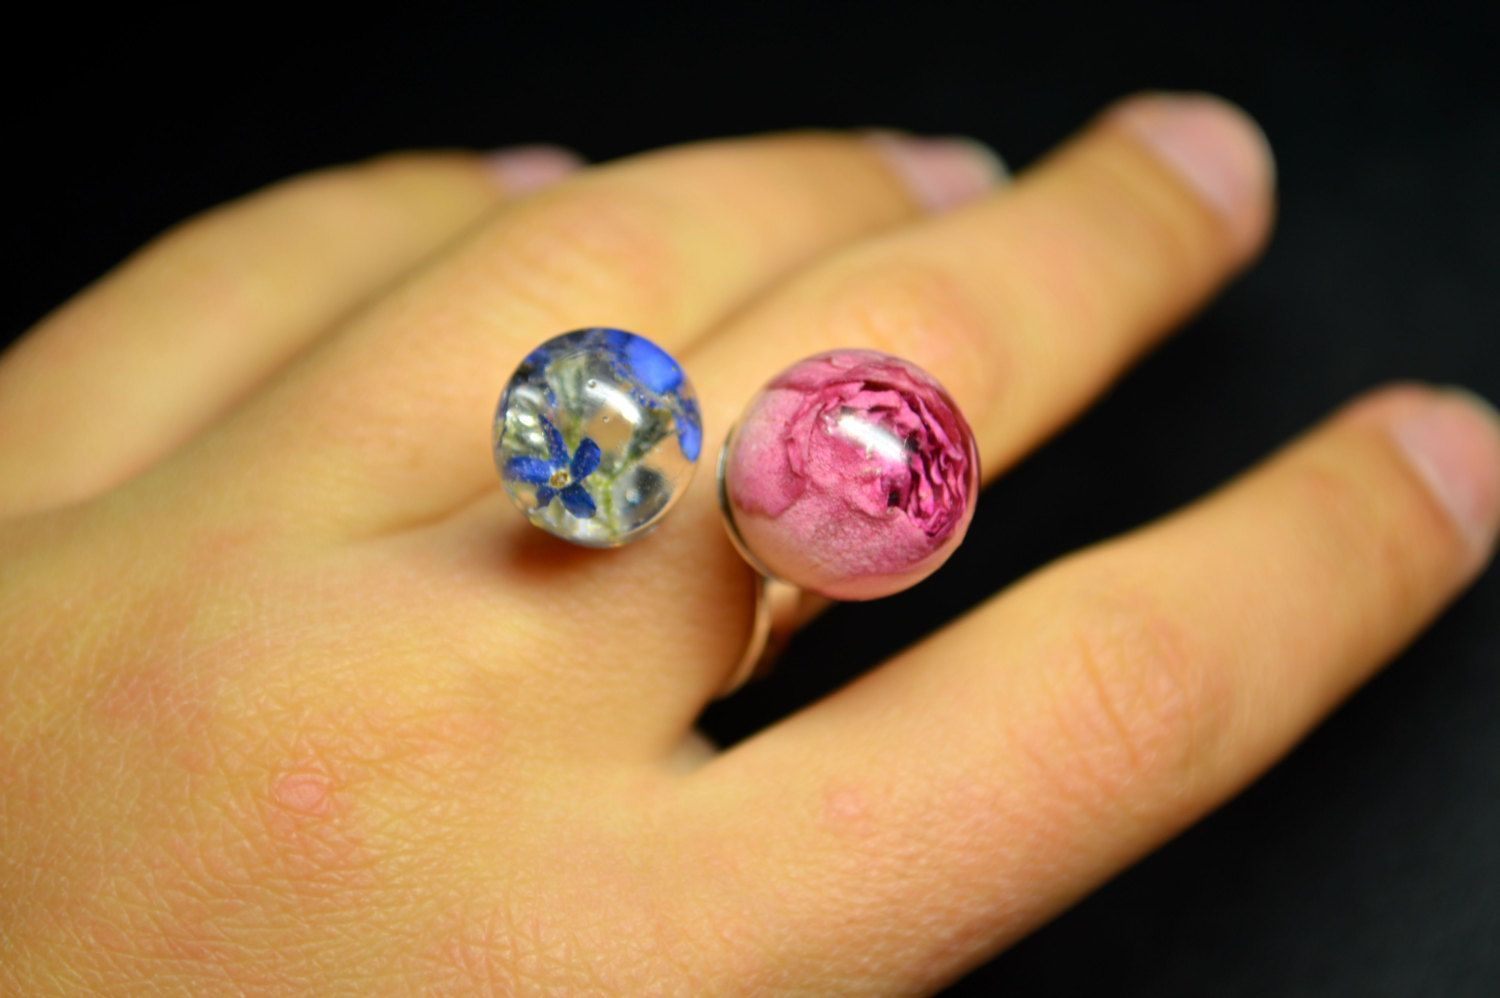 Double Ring with real flowers Crystal Resin Dried flowers Dried Roses Forget me not flowers Eco Jewelry Floral Ring Natural Ring Elegant by VITALIAart on Etsy